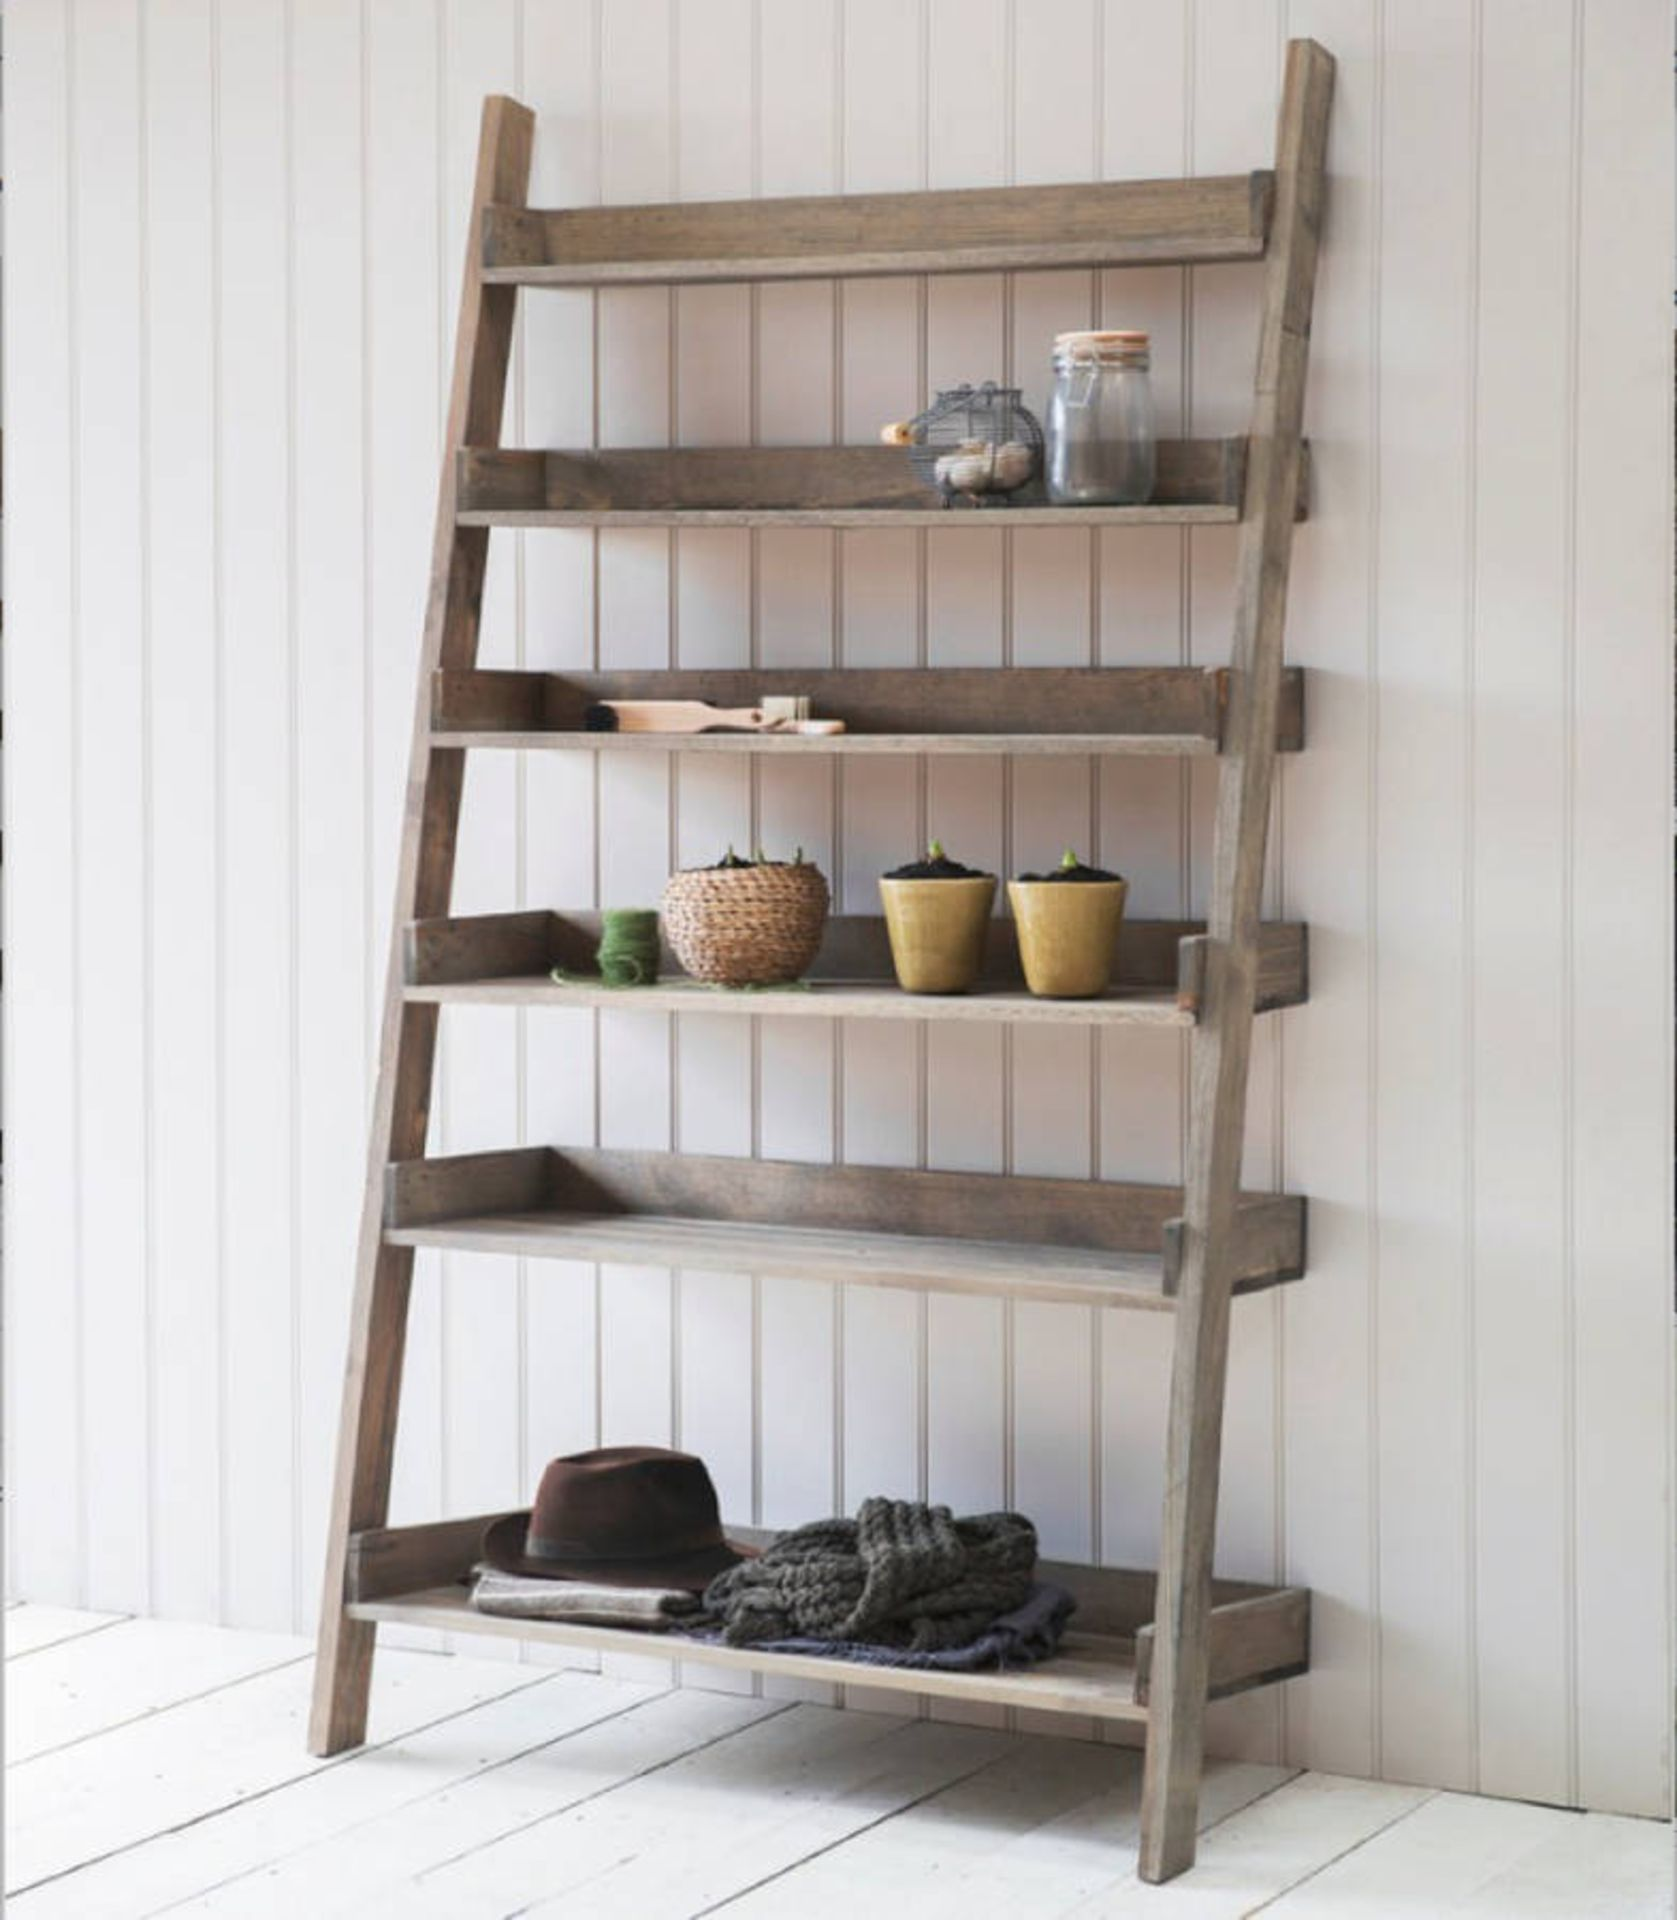 Parlane Five Shelf Ladder Display Black Create an inspired space As an alternative to a